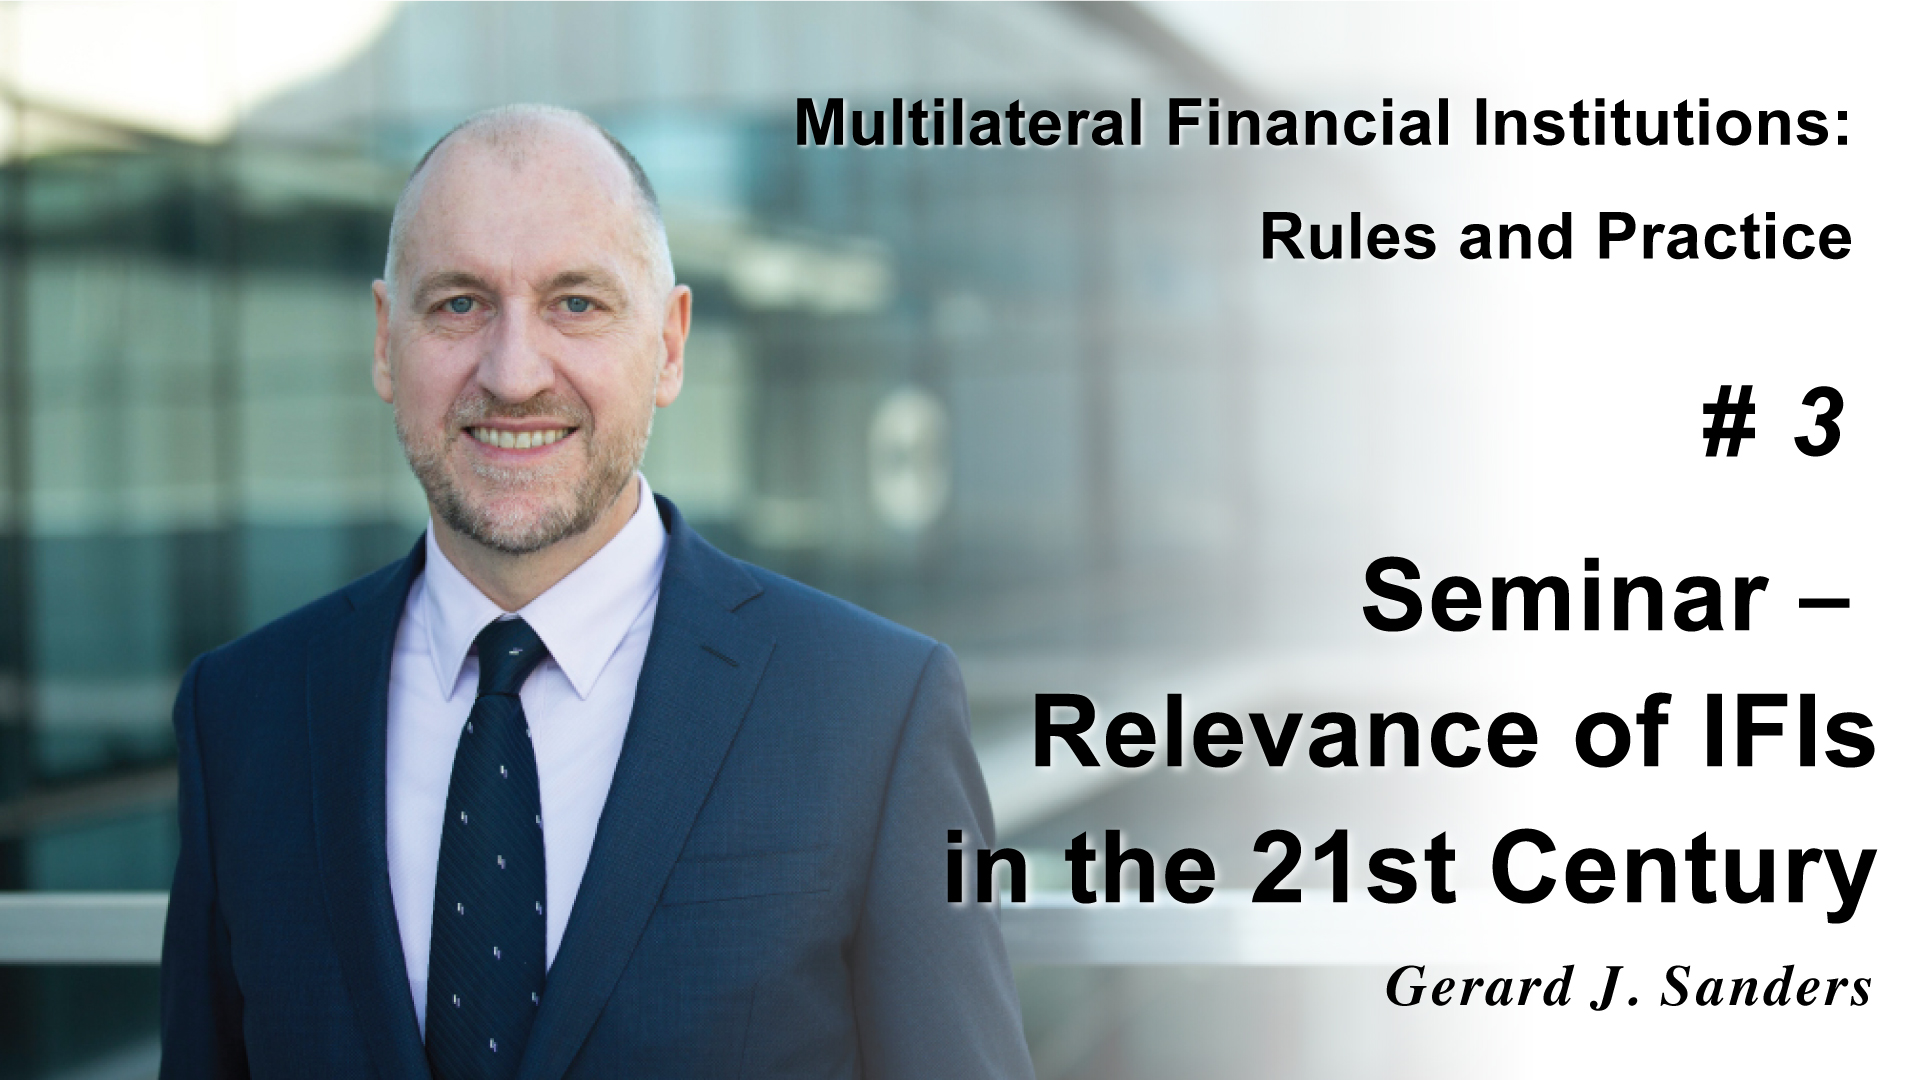 Seminar - Relevance of IFIs in the 21st Century